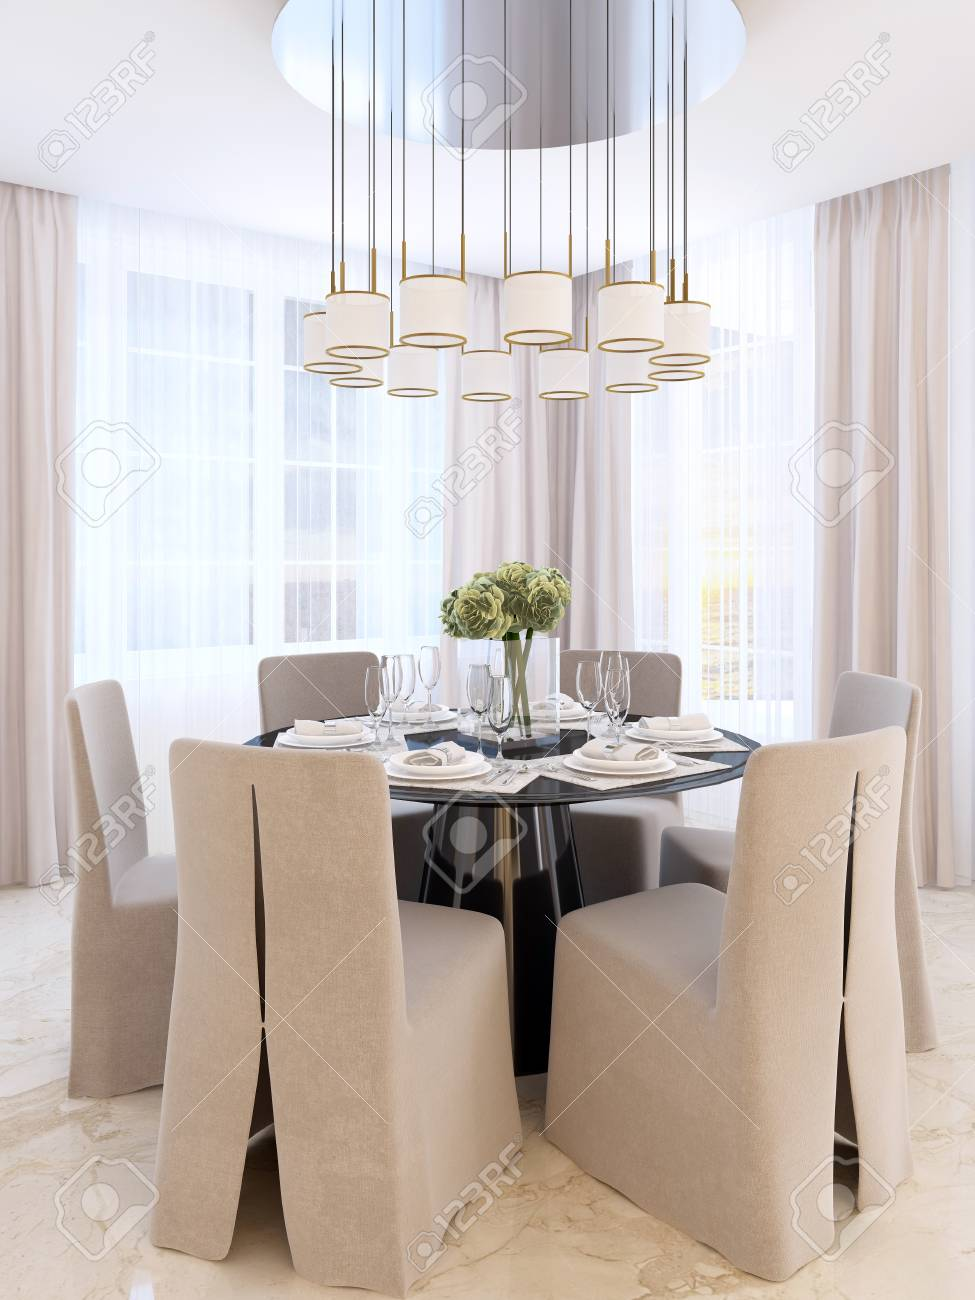 Modern Dining Table With Six Chairs Black Decorated And Chandelier Over It